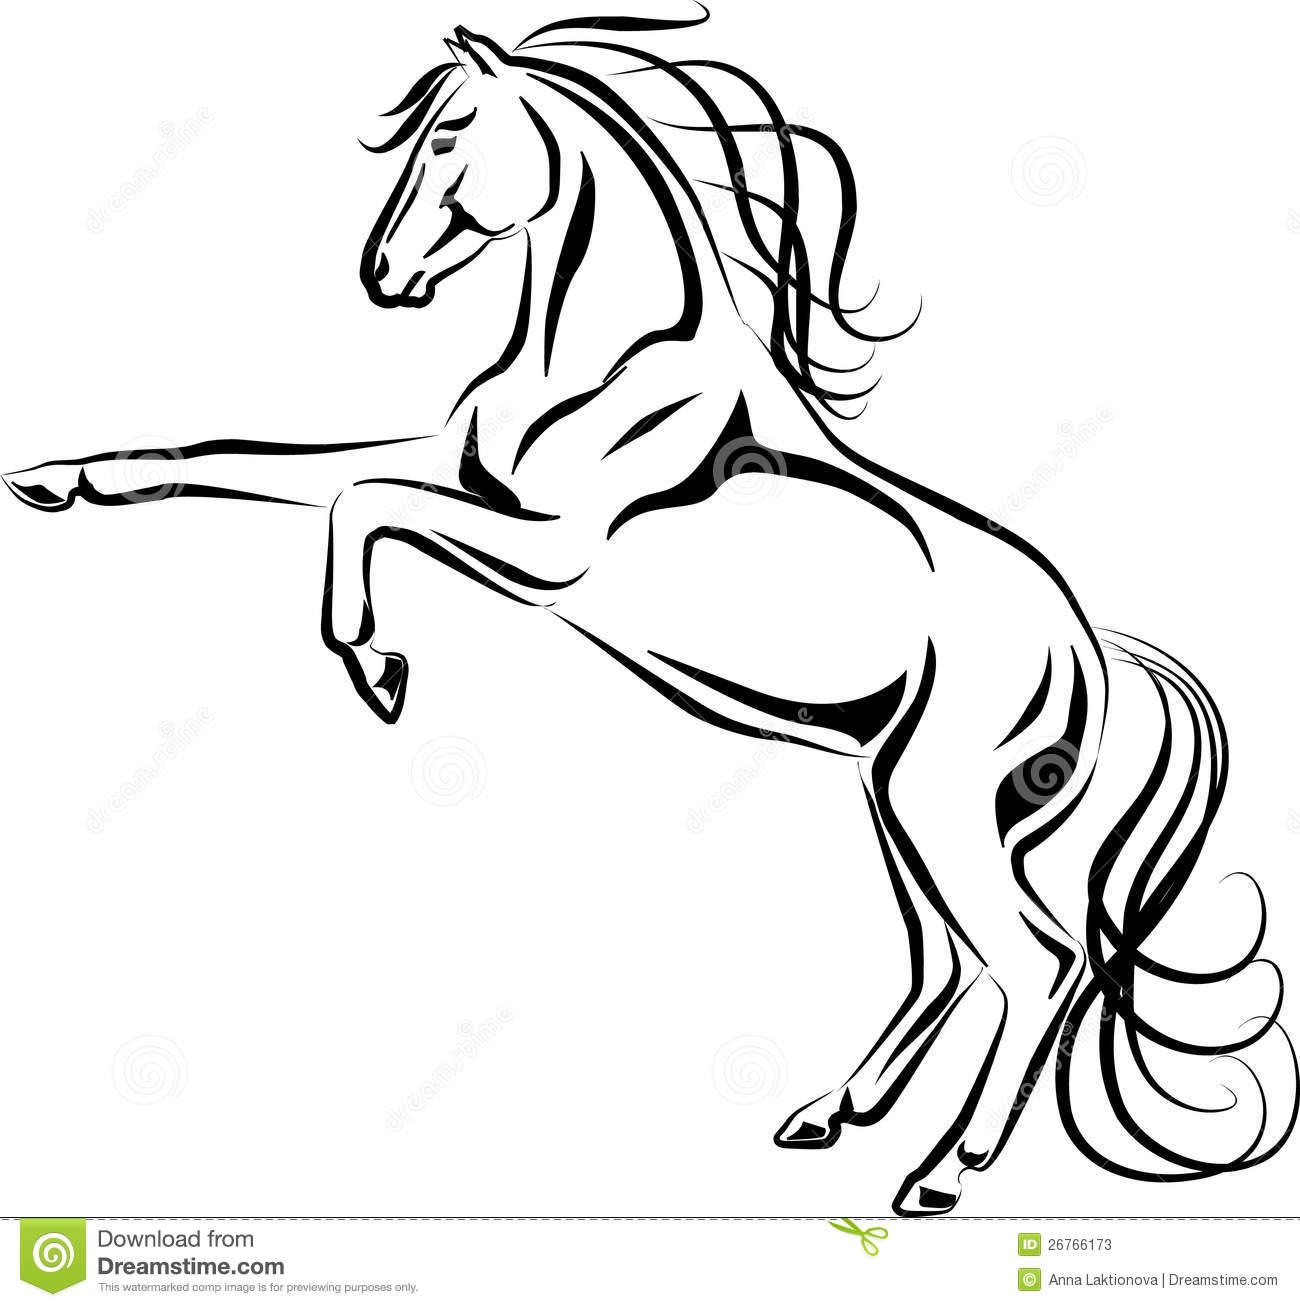 Horse black line clipart clipart suggest for Mustang horse coloring pages printable